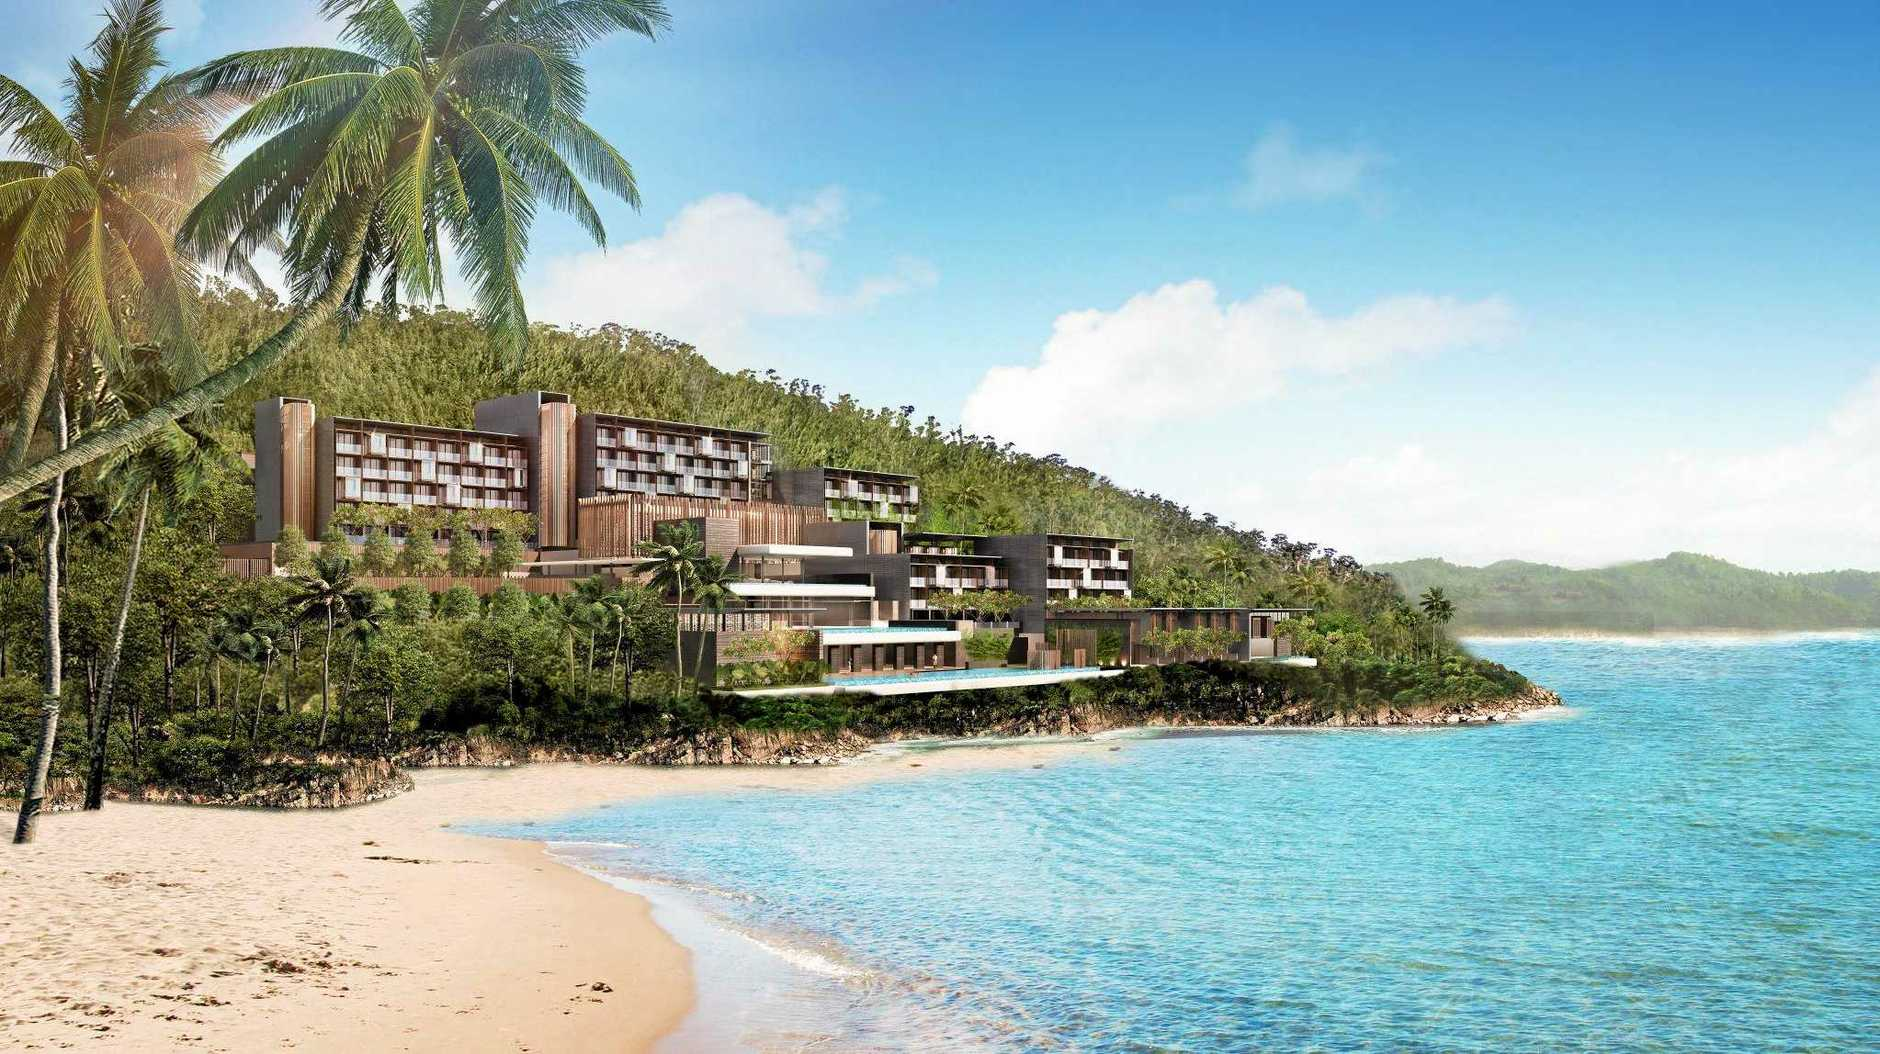 An artist's impression of the luxury hotel to be built at Funnel Bay.